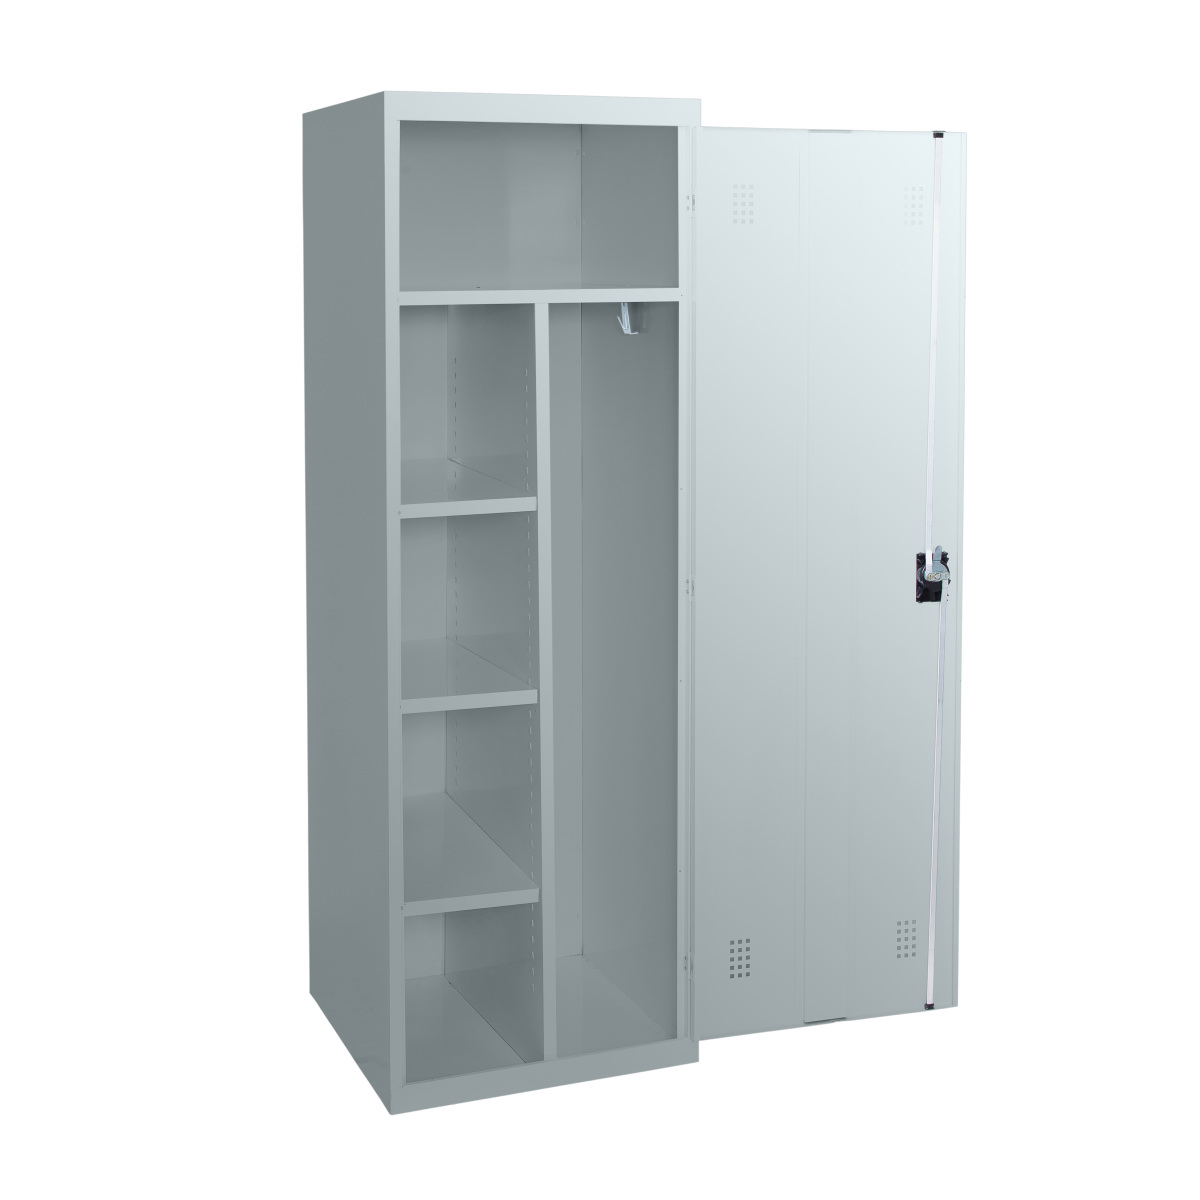 sllu-statewide-large-utility-locker-open-light-grey